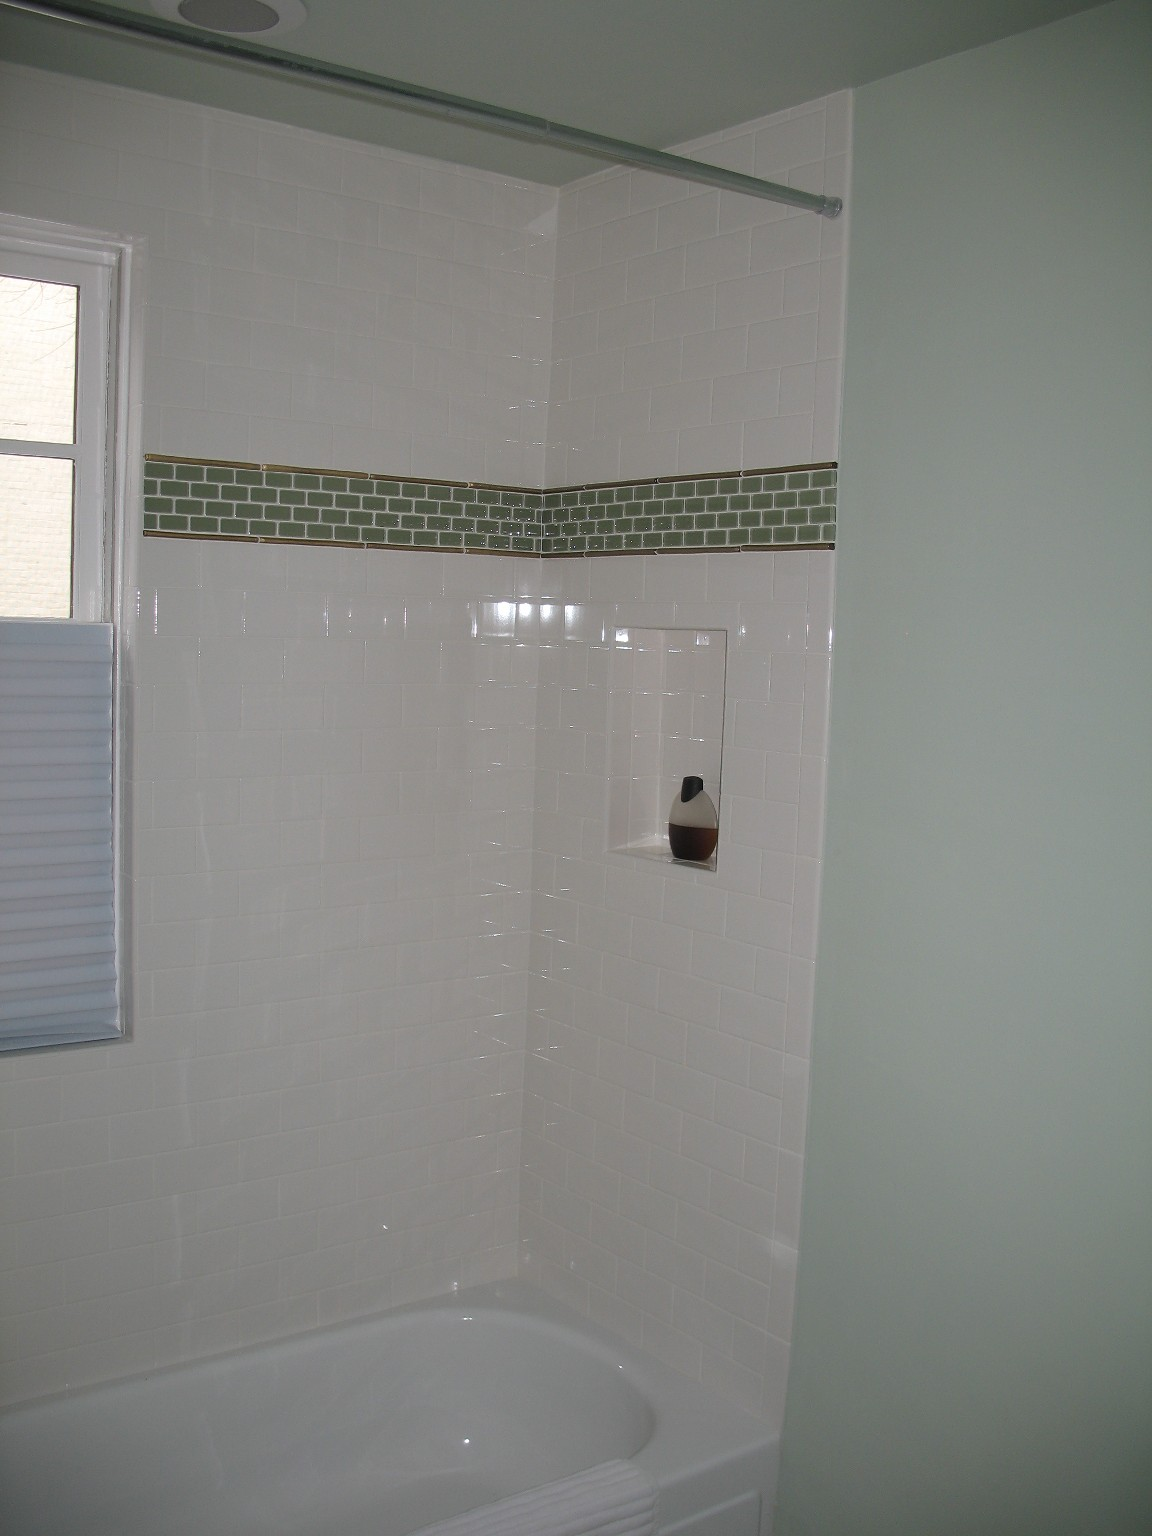 White Subway Tile With Glass Tile Decorative Band For Master Shower Remodel Ideas Pinterest